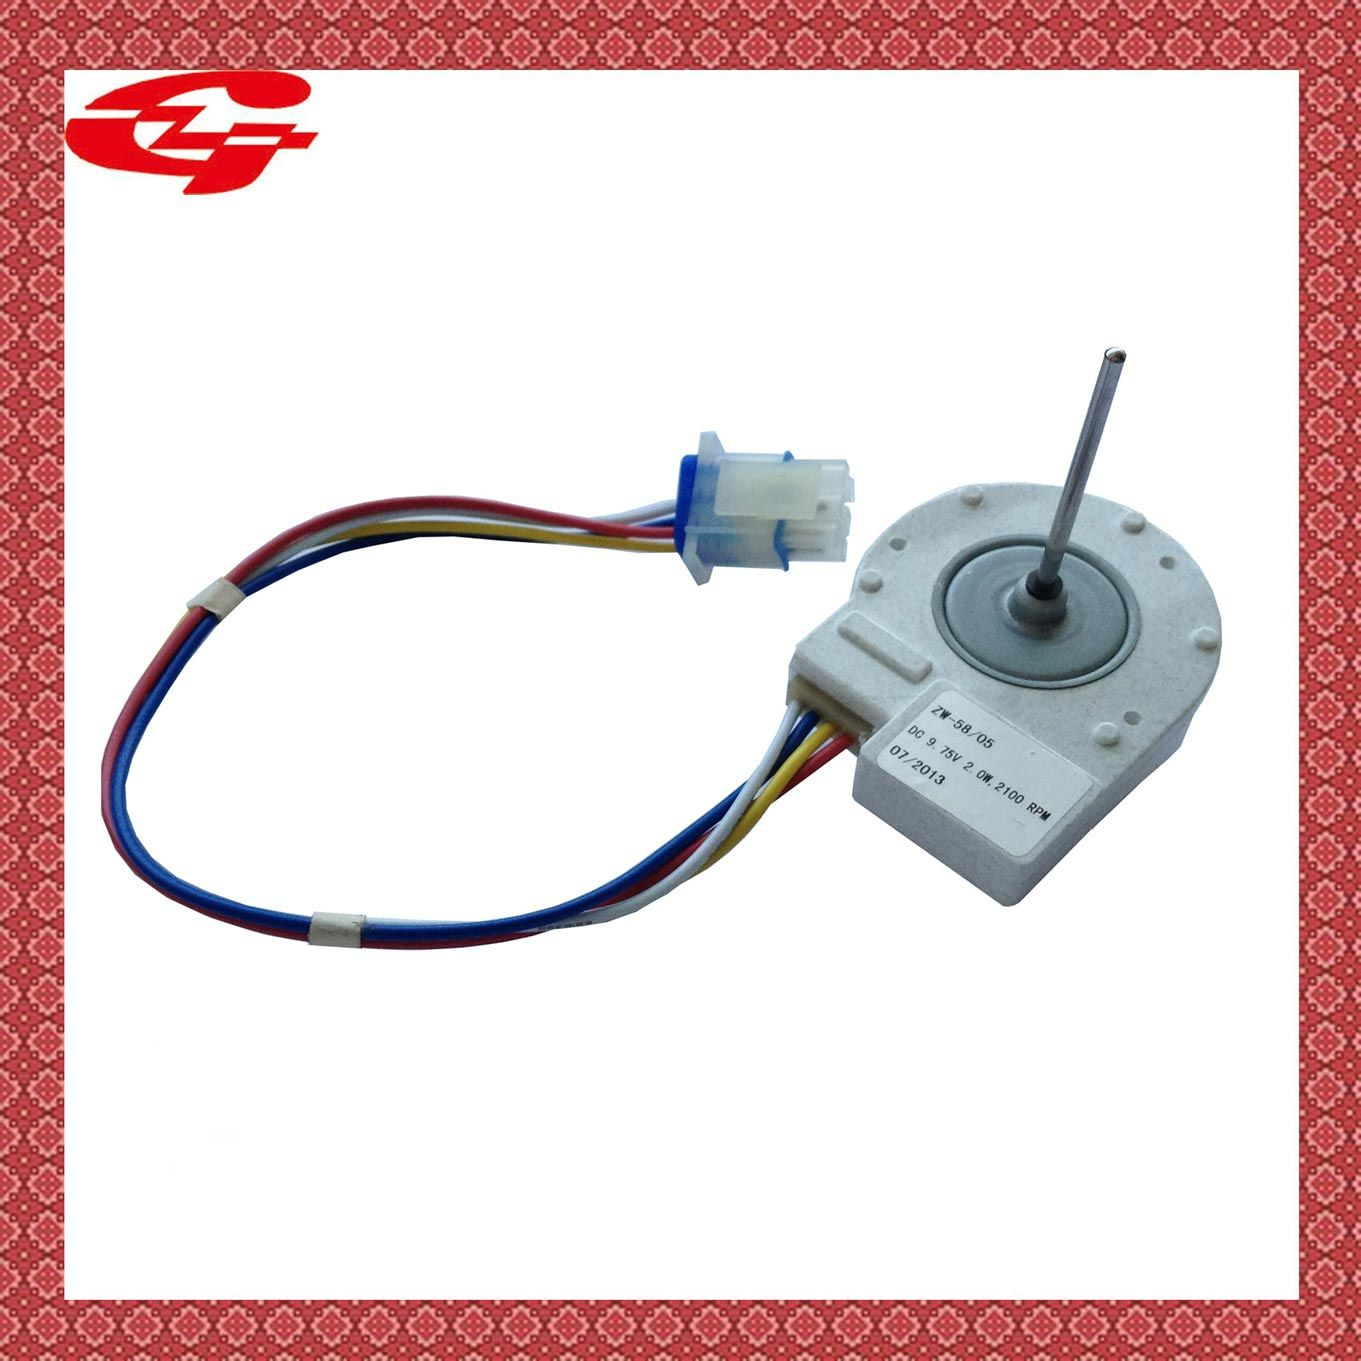 China Dc Servo Motor 55sz China Servo Motor Dc Motor